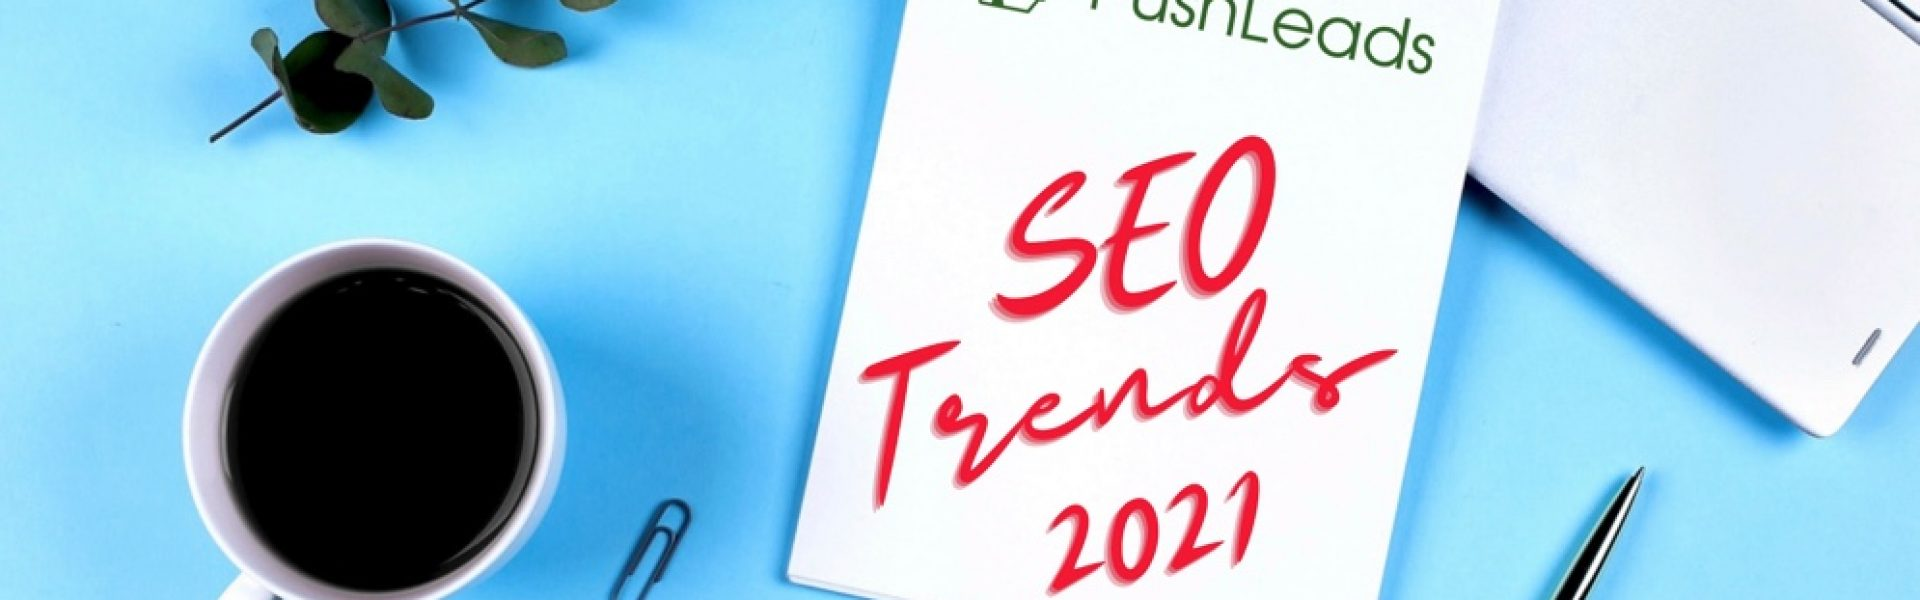 seo-trends-for-2021